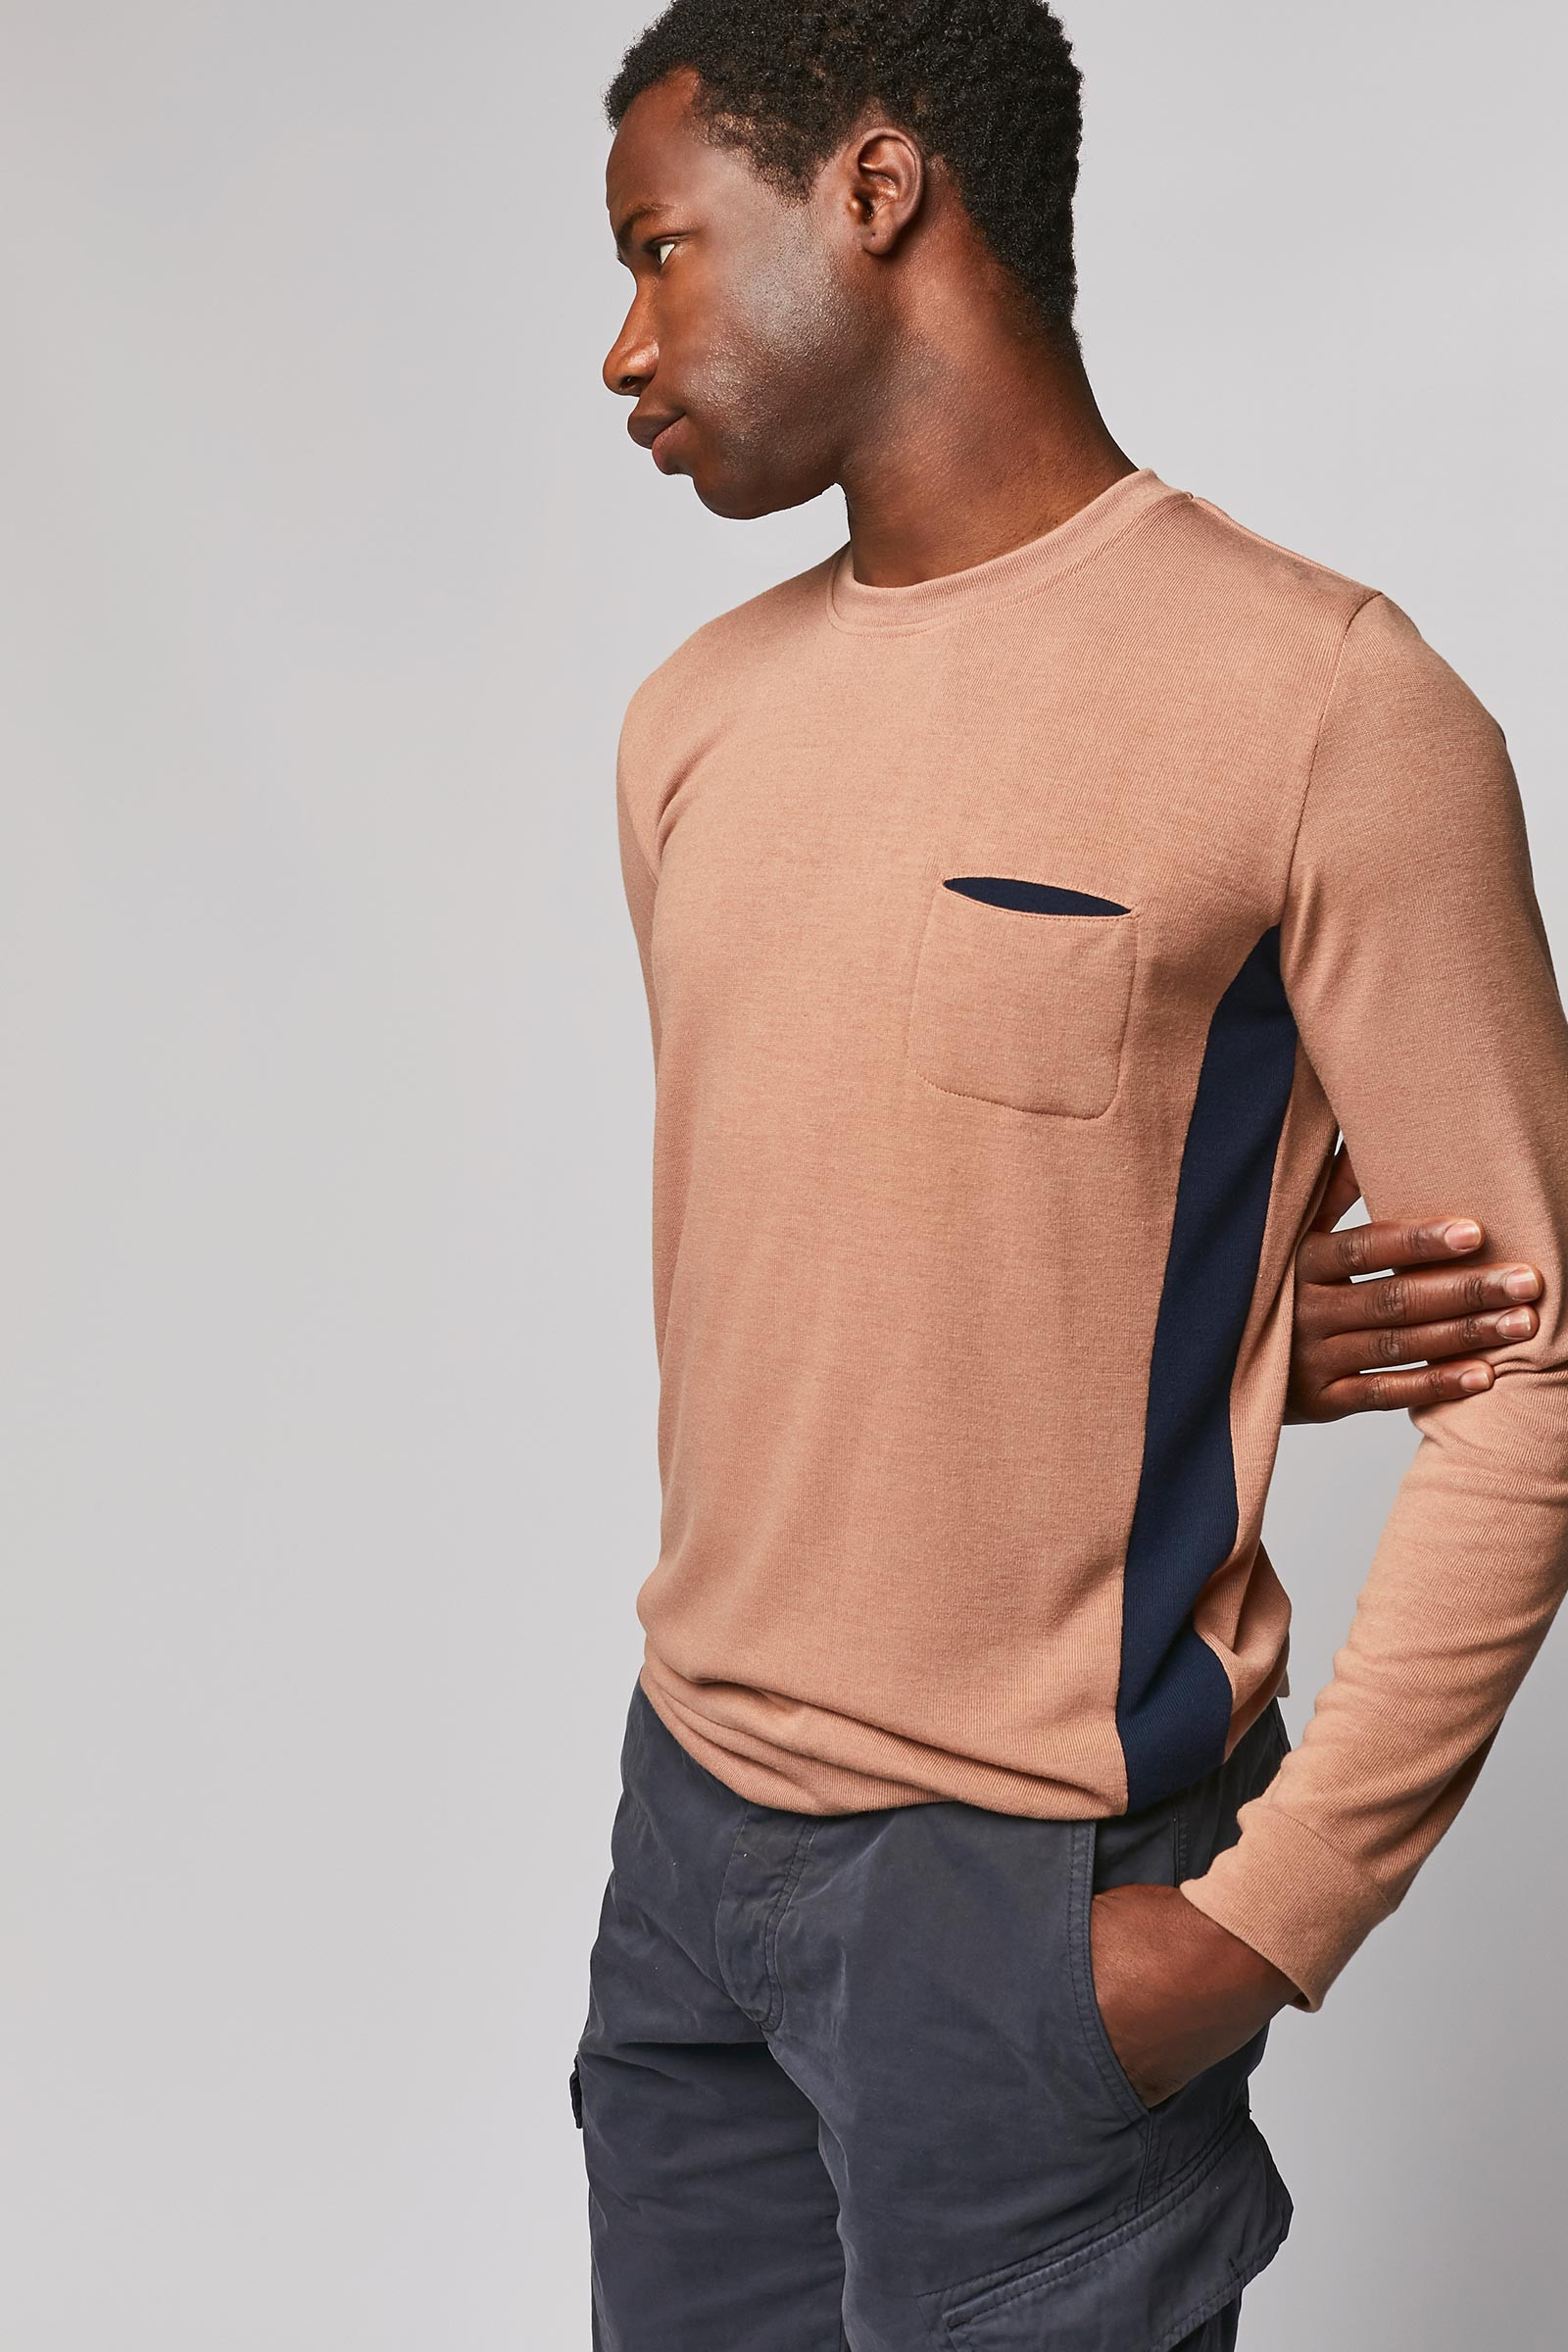 Aged Pink Pullover side